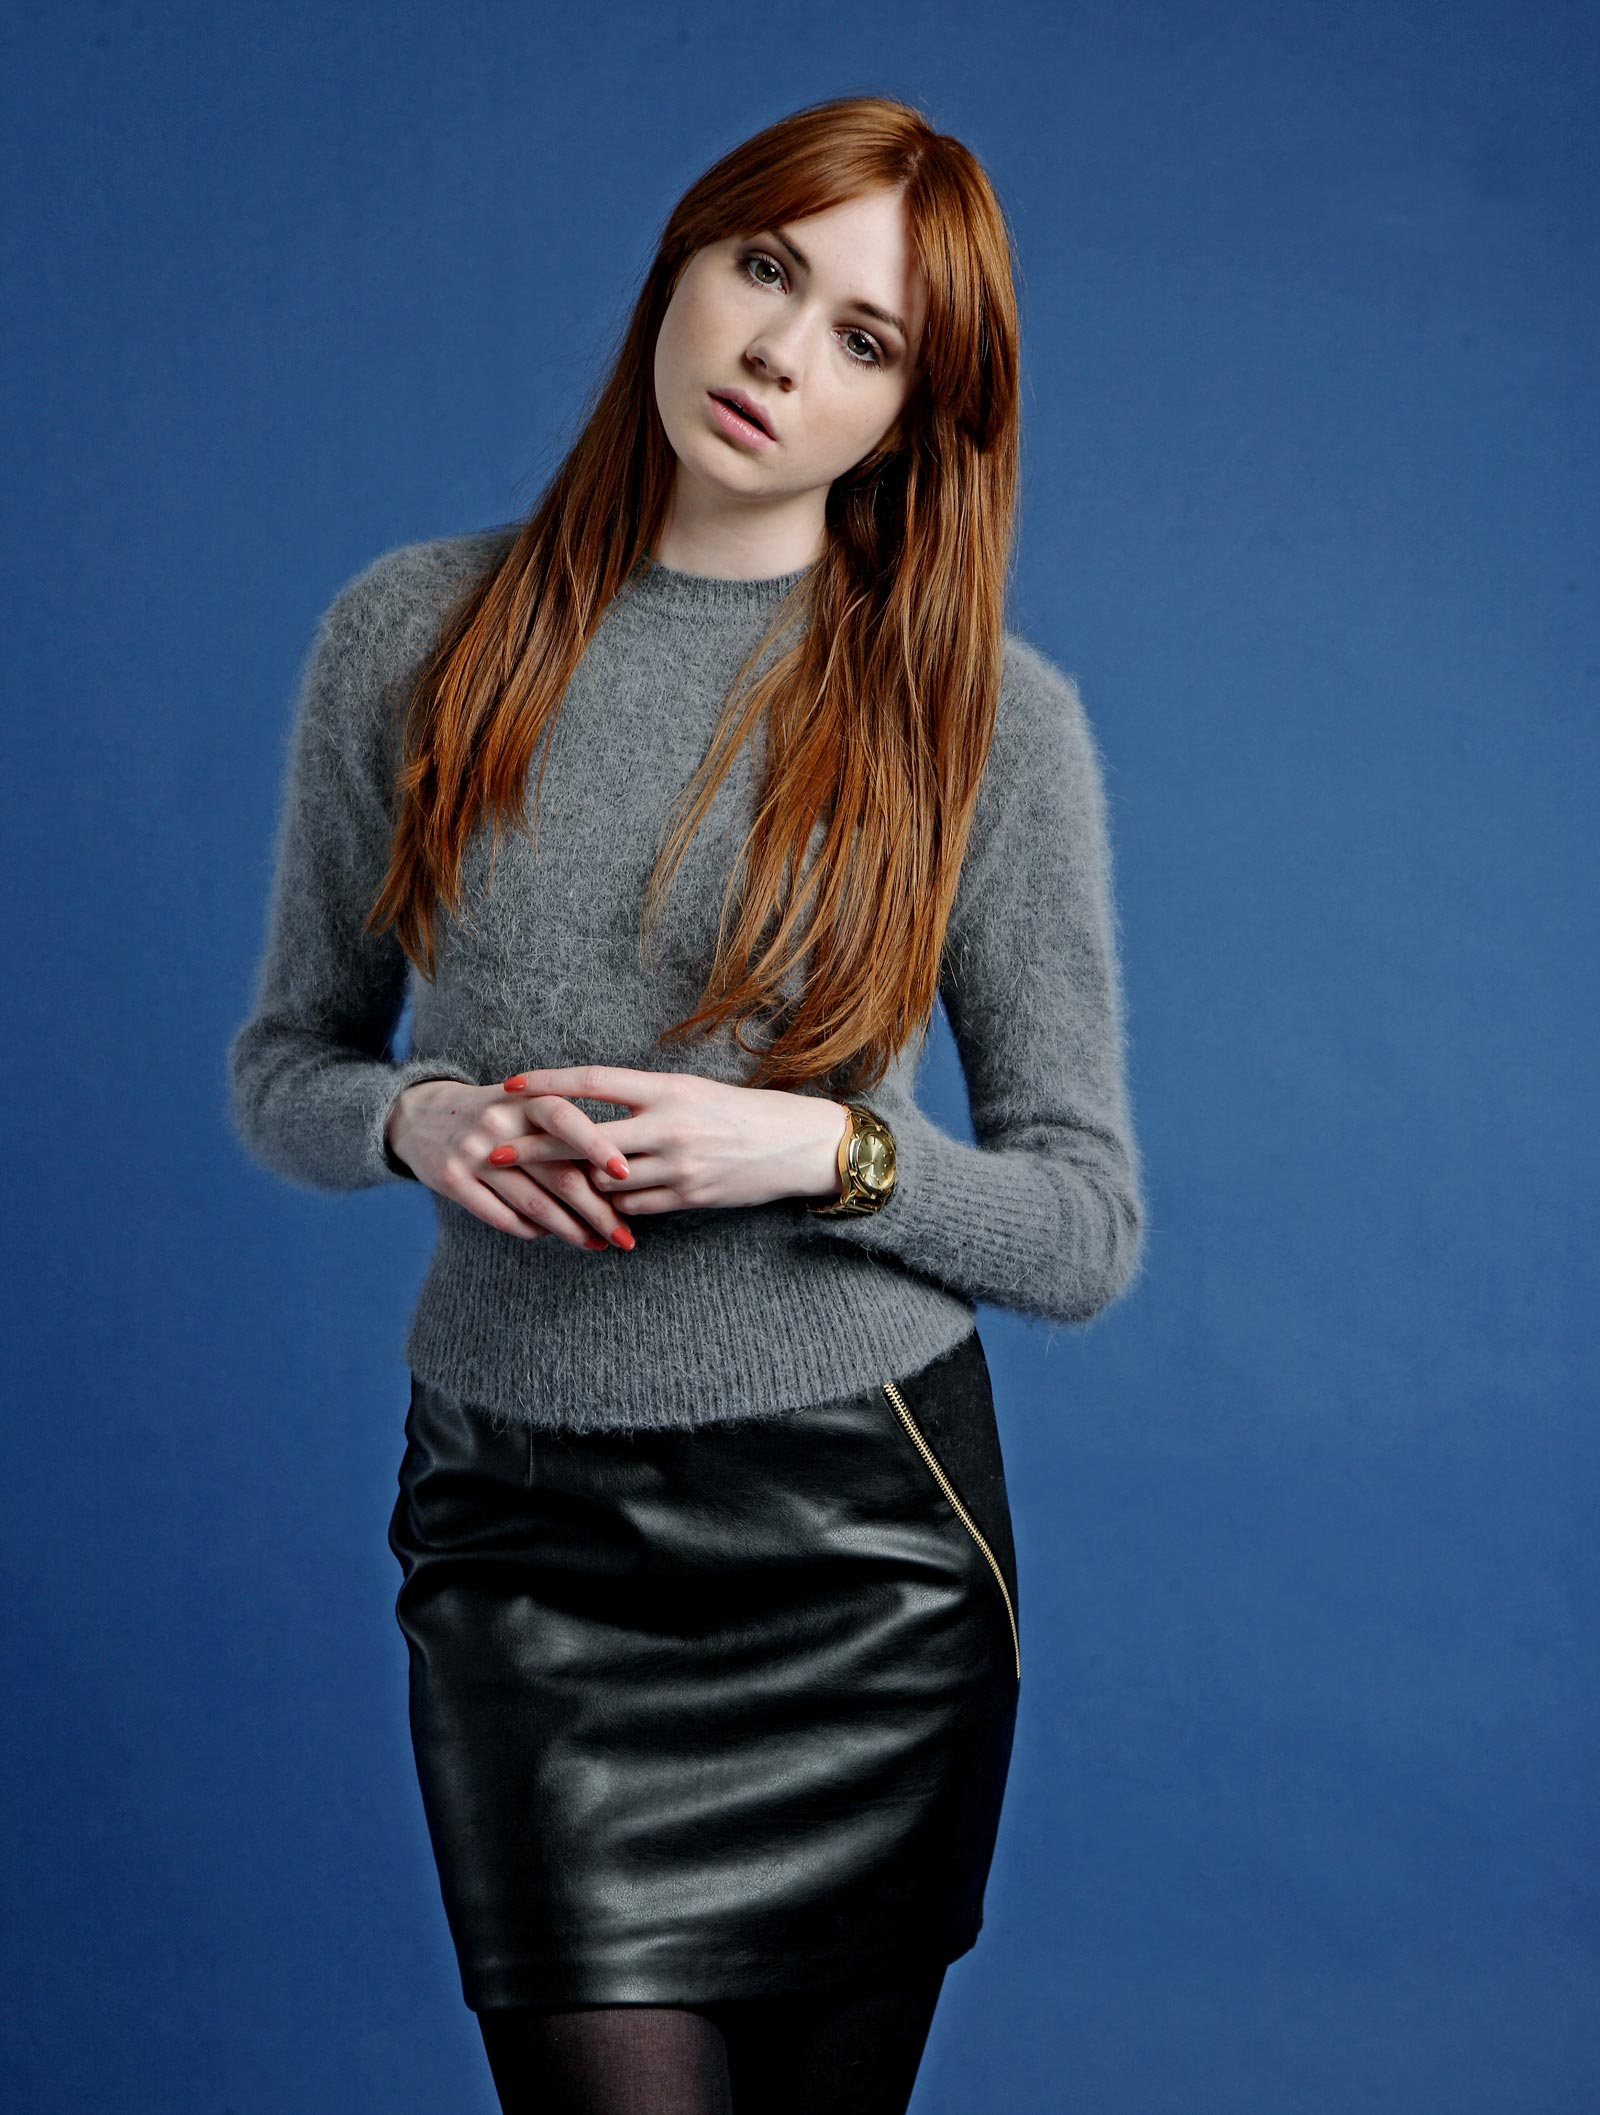 Karen Gillan Guardian photoshoot